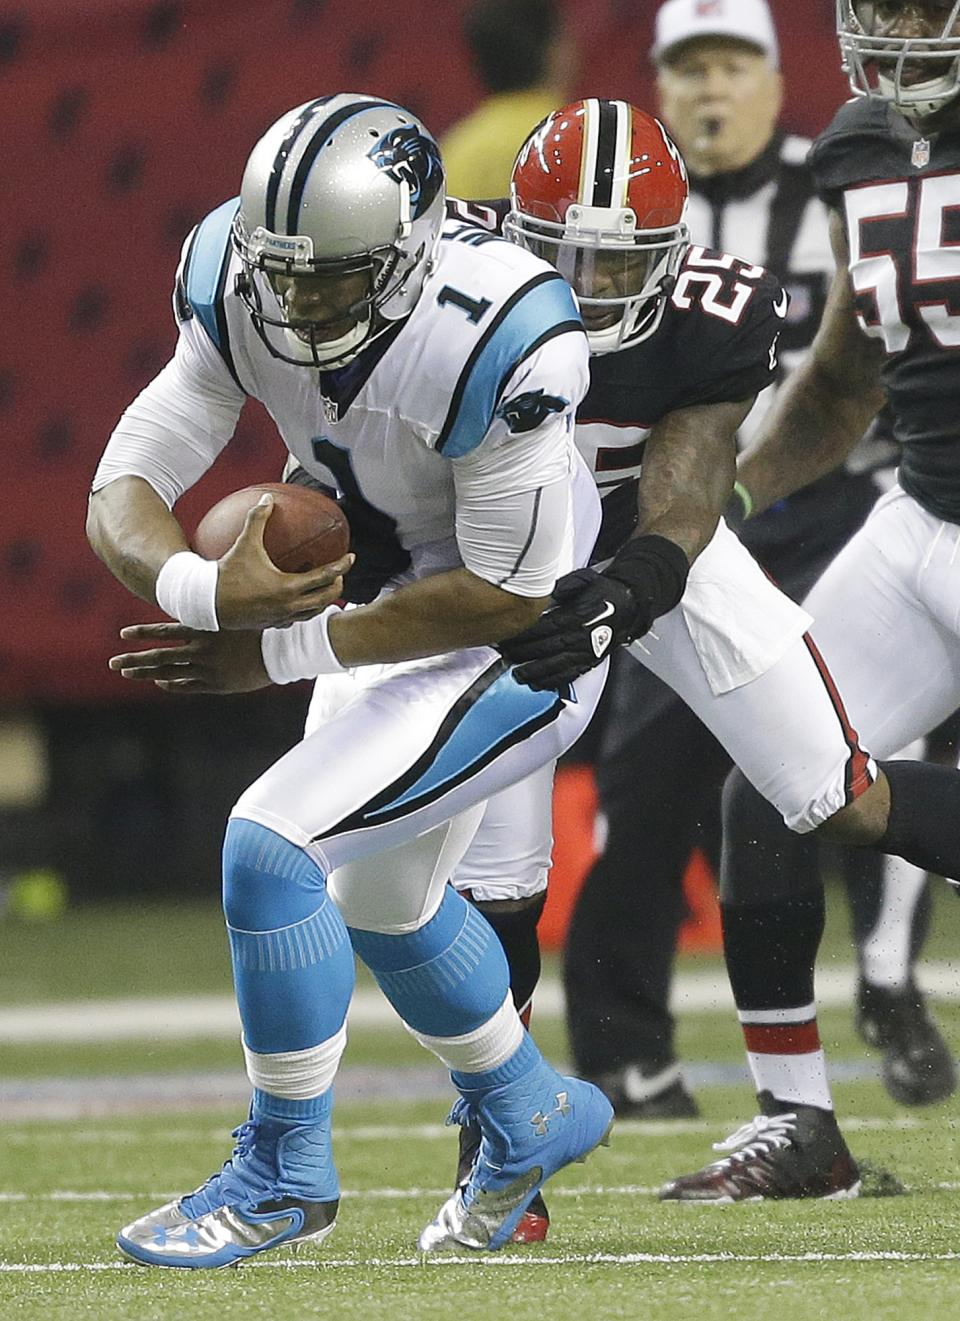 Carolina Panthers quarterback Cam Newton (1) is stopped by Atlanta Falcons strong safety William Moore (25) during the first half of an NFL football game Sunday, Sept. 30, 2012, in Atlanta. (AP Photo/David Goldman)